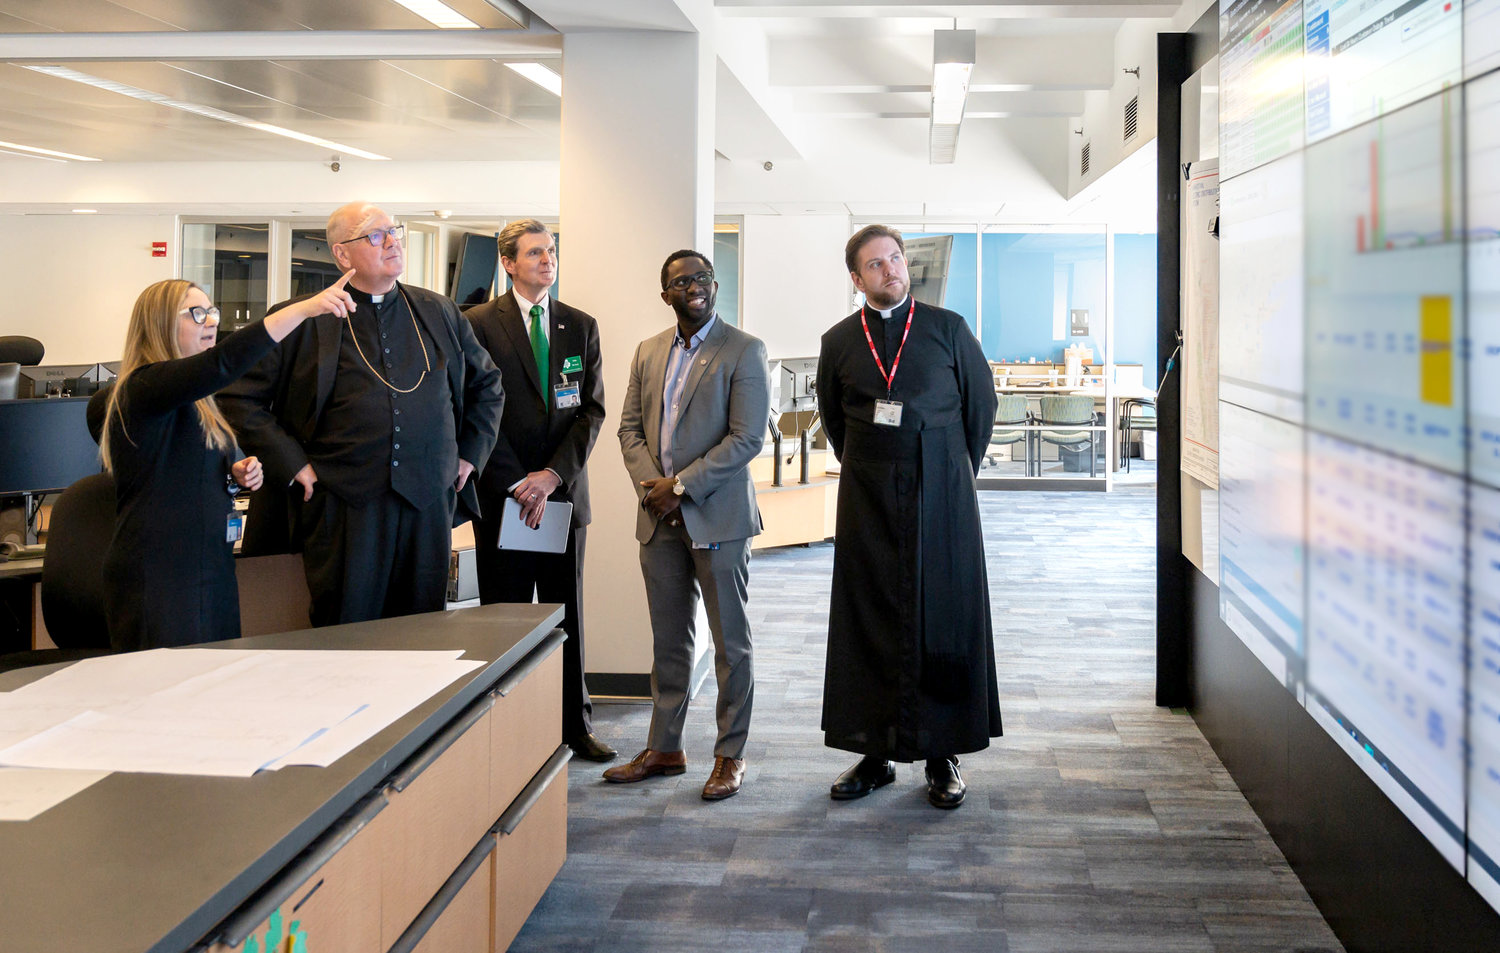 Cardinal Dolan joined Con Edison's Emerald Society for a celebration of Irish-American history March 5. The cardinal spoke to more than 200 employees at Con Ed's headquarters in Union Square about one of his predecessors, Archbishop John Hughes, who led the Catholic Church in New York during a period of tremendous growth in the 19th century. The cardinal is shown in the electric operations control room with, from left, Michelle DeMascio, control room manager; John McAvoy, chairman and CEO of Con Edison; Shaun Smith, general manager; and Father Stephen Ries, the cardinal's priest secretary.